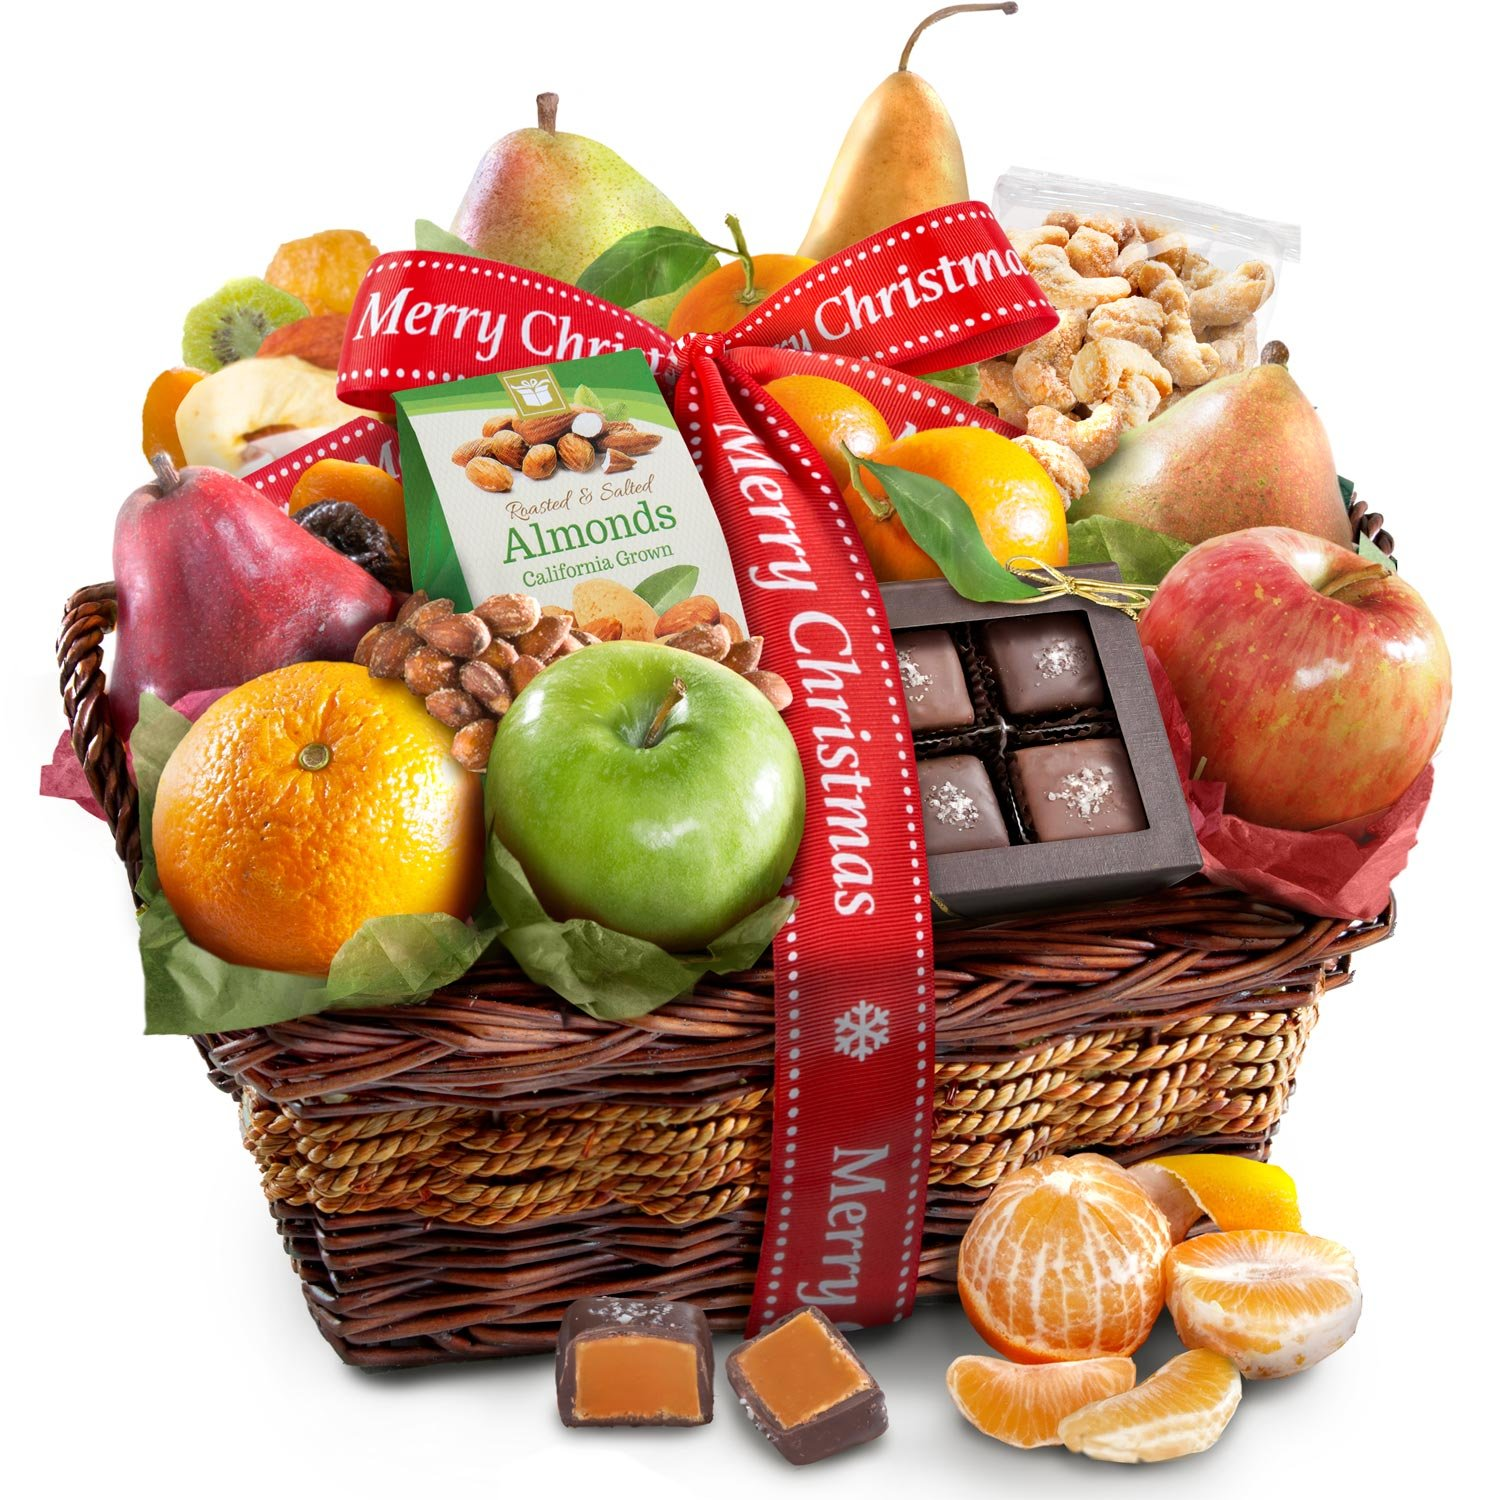 Amazon.com : Golden State Fruit Orchard Favorites Gift Basket, Merry ...